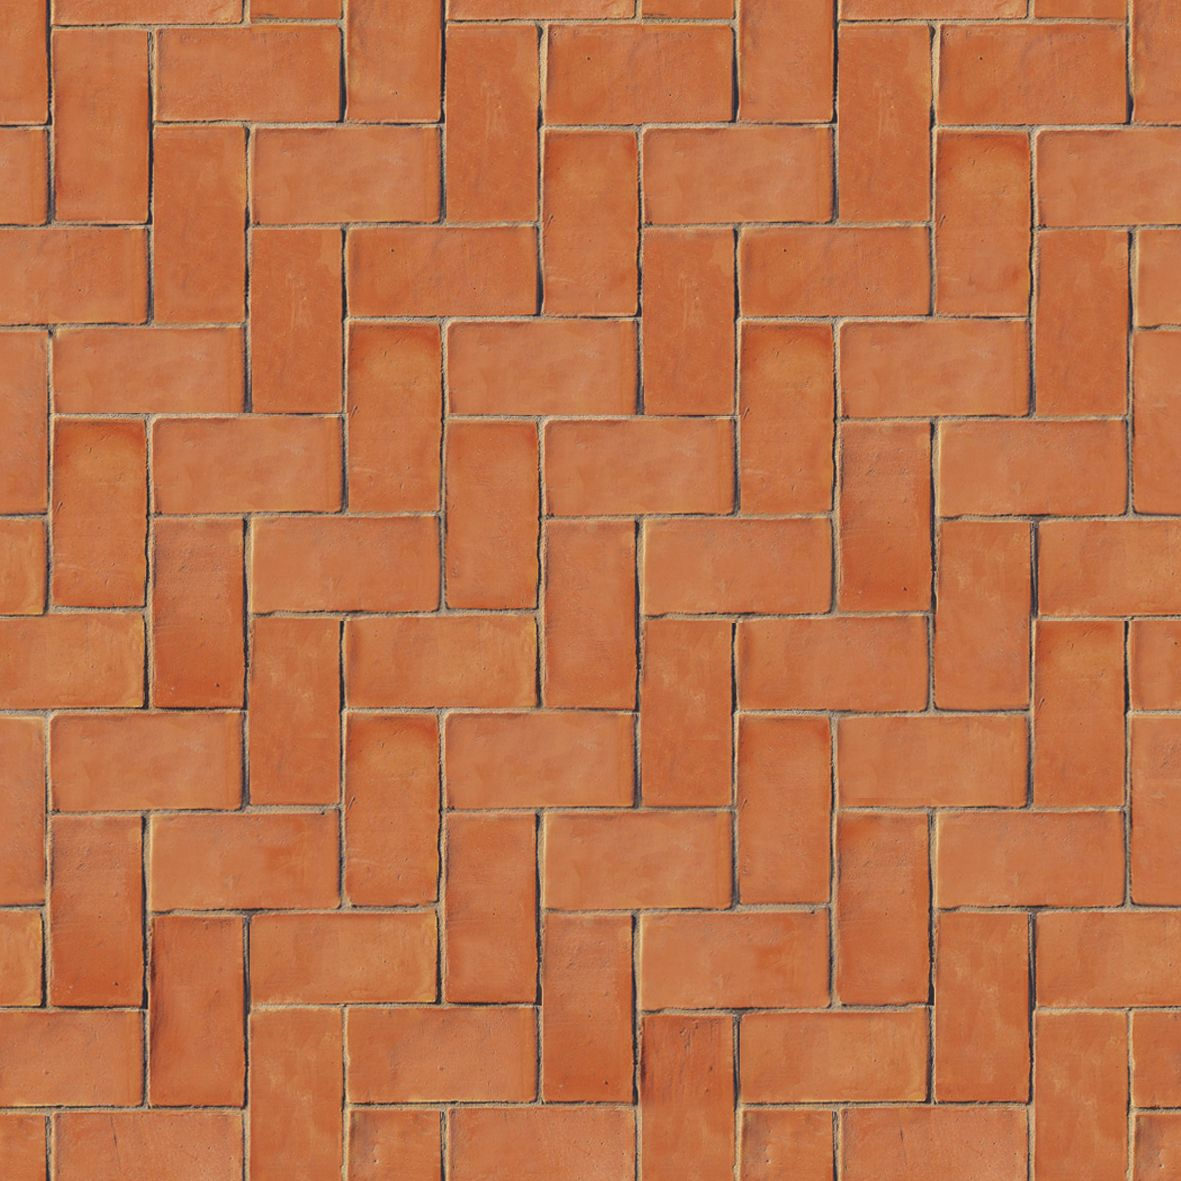 terracotta floor tiles - google search | for the home | pinterest